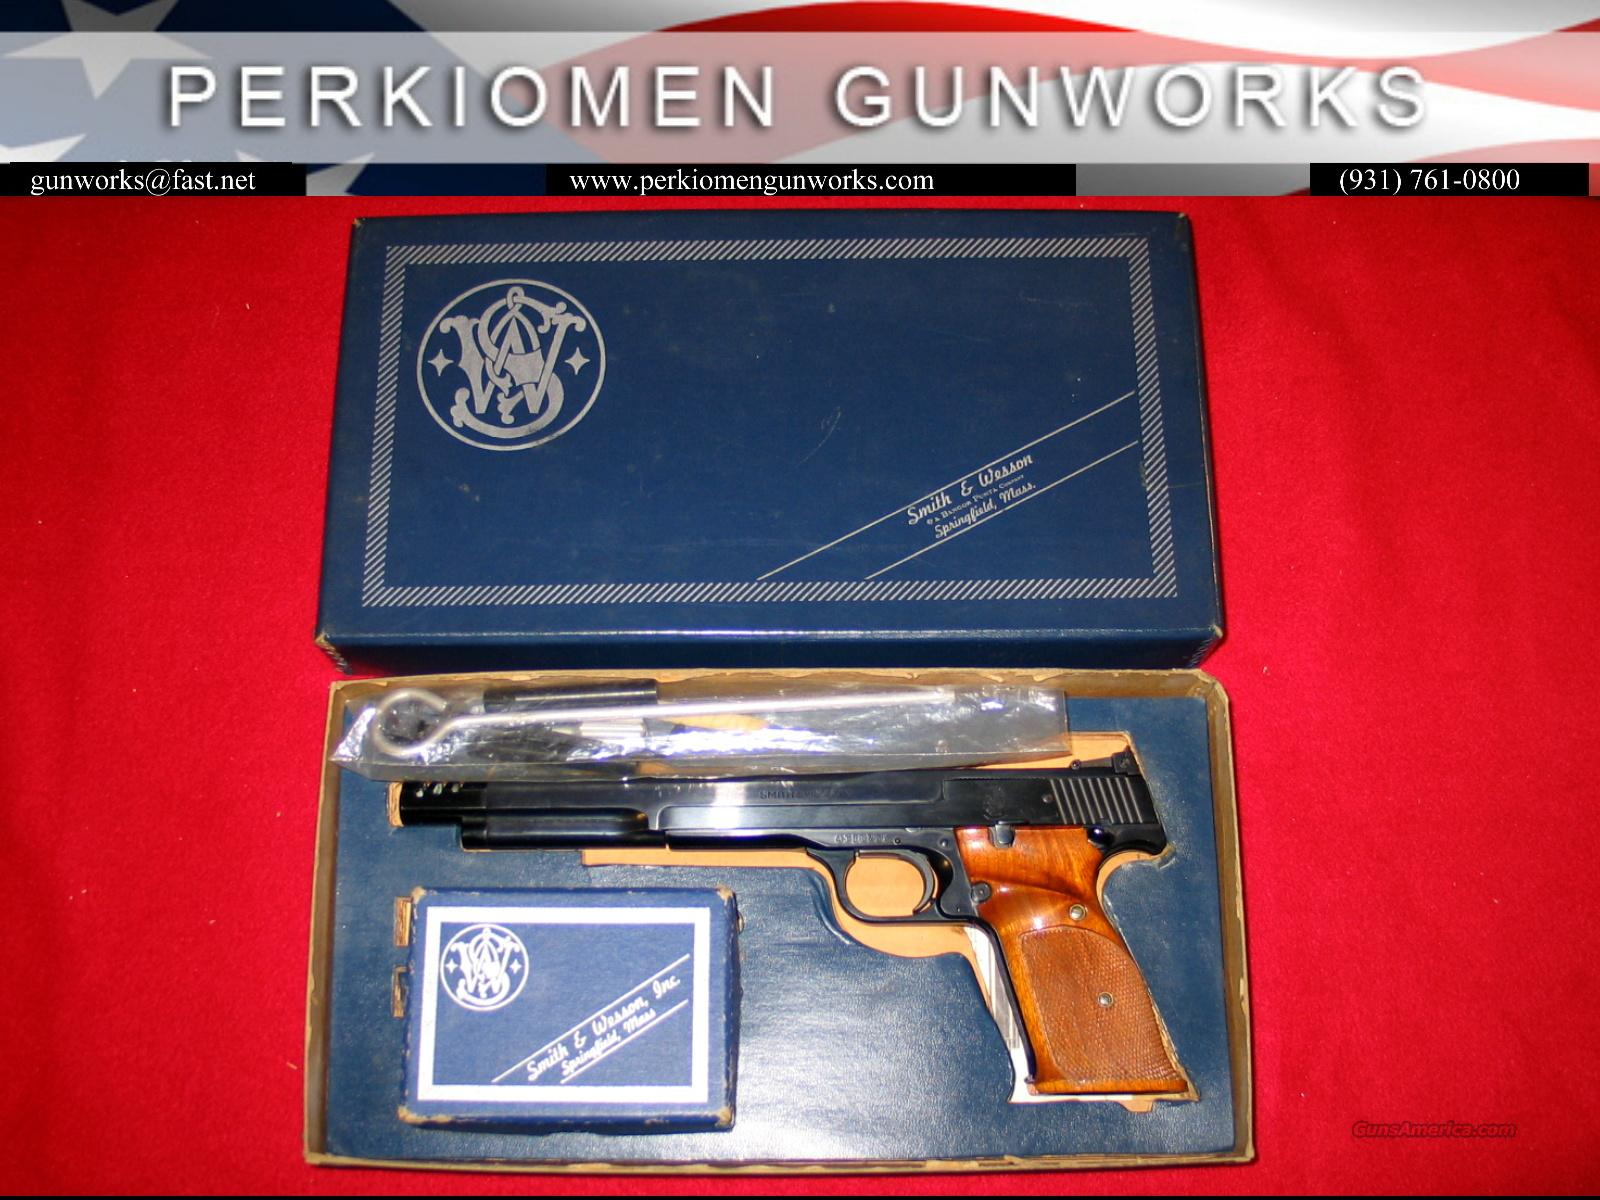 41 A Series w'brake and Weights - MINT!!  Guns > Pistols > Smith & Wesson Pistols - Autos > .22 Autos